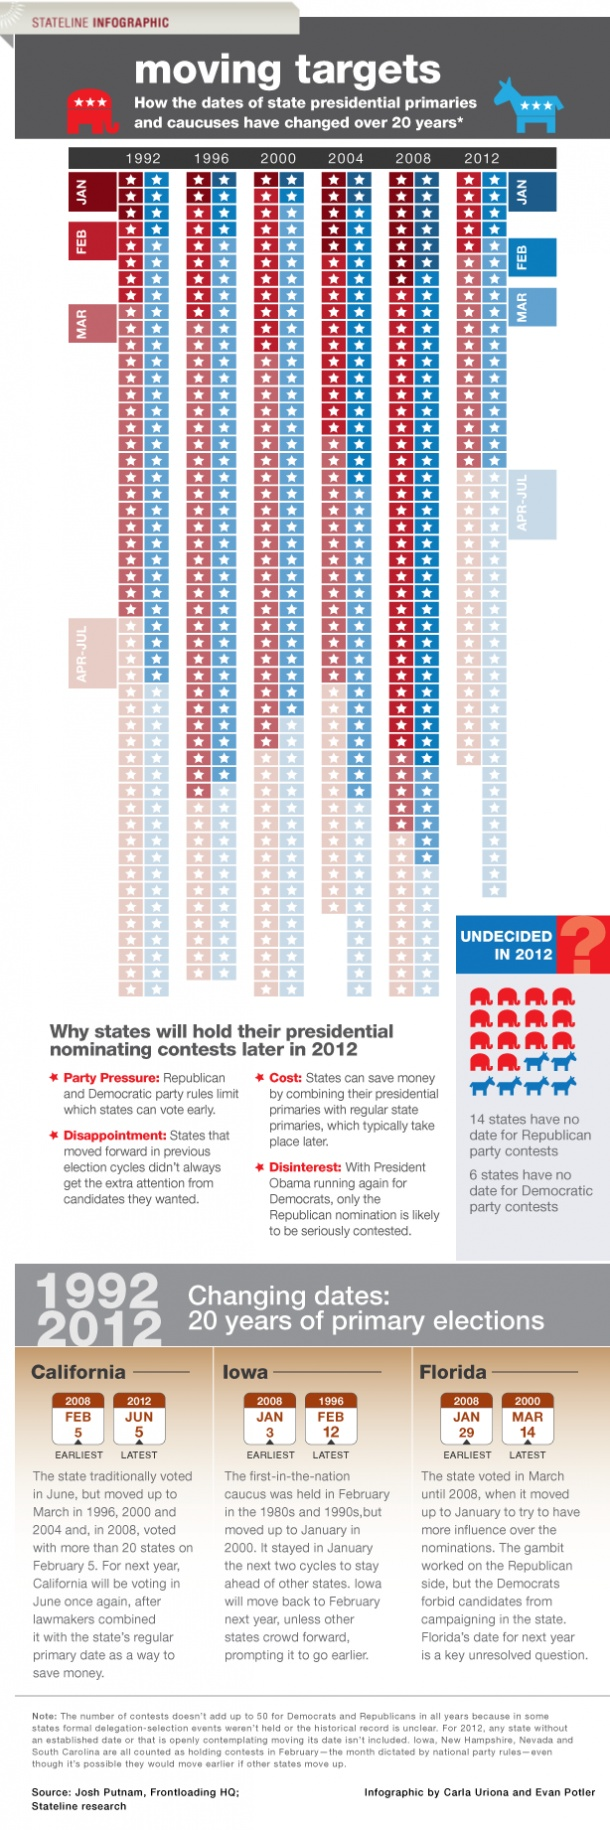 Moving Targets: How The Dates of State Presidential Primaries And Caucuses Have Changed Over 20 Years [INFOGRAPHIC]